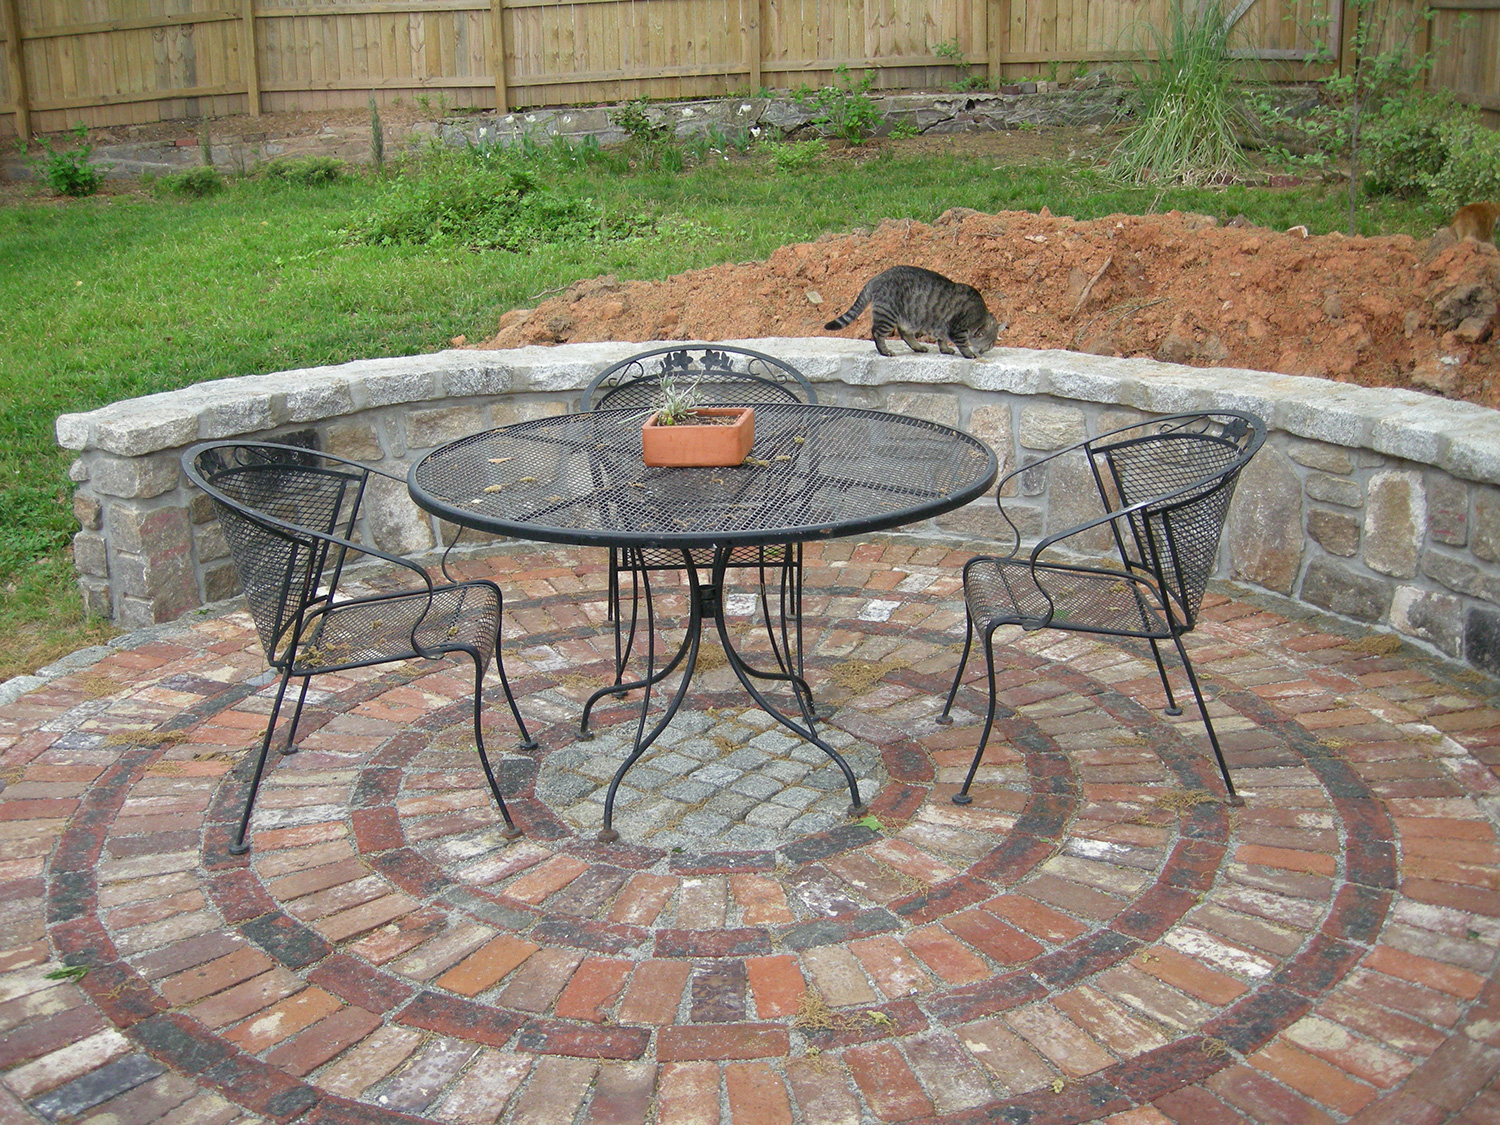 12 Circular Patio Furniture The Wall And The Patio In Their Final State With Our Patio Furniture